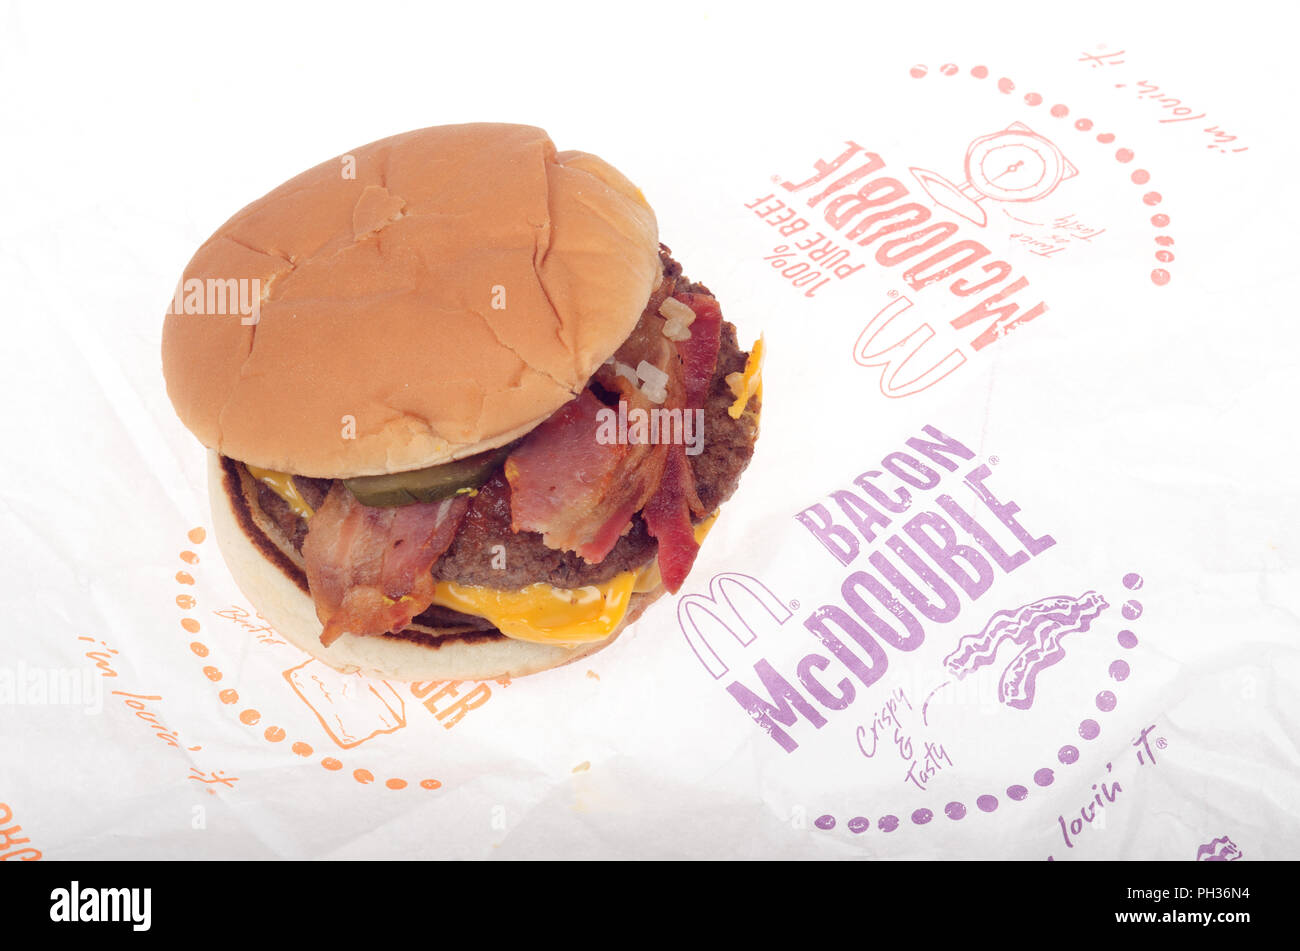 McDonalds Bacon McDouble Cheeseburger with ketchup, onions, pickle and yellow cheese on wrapper - Stock Image